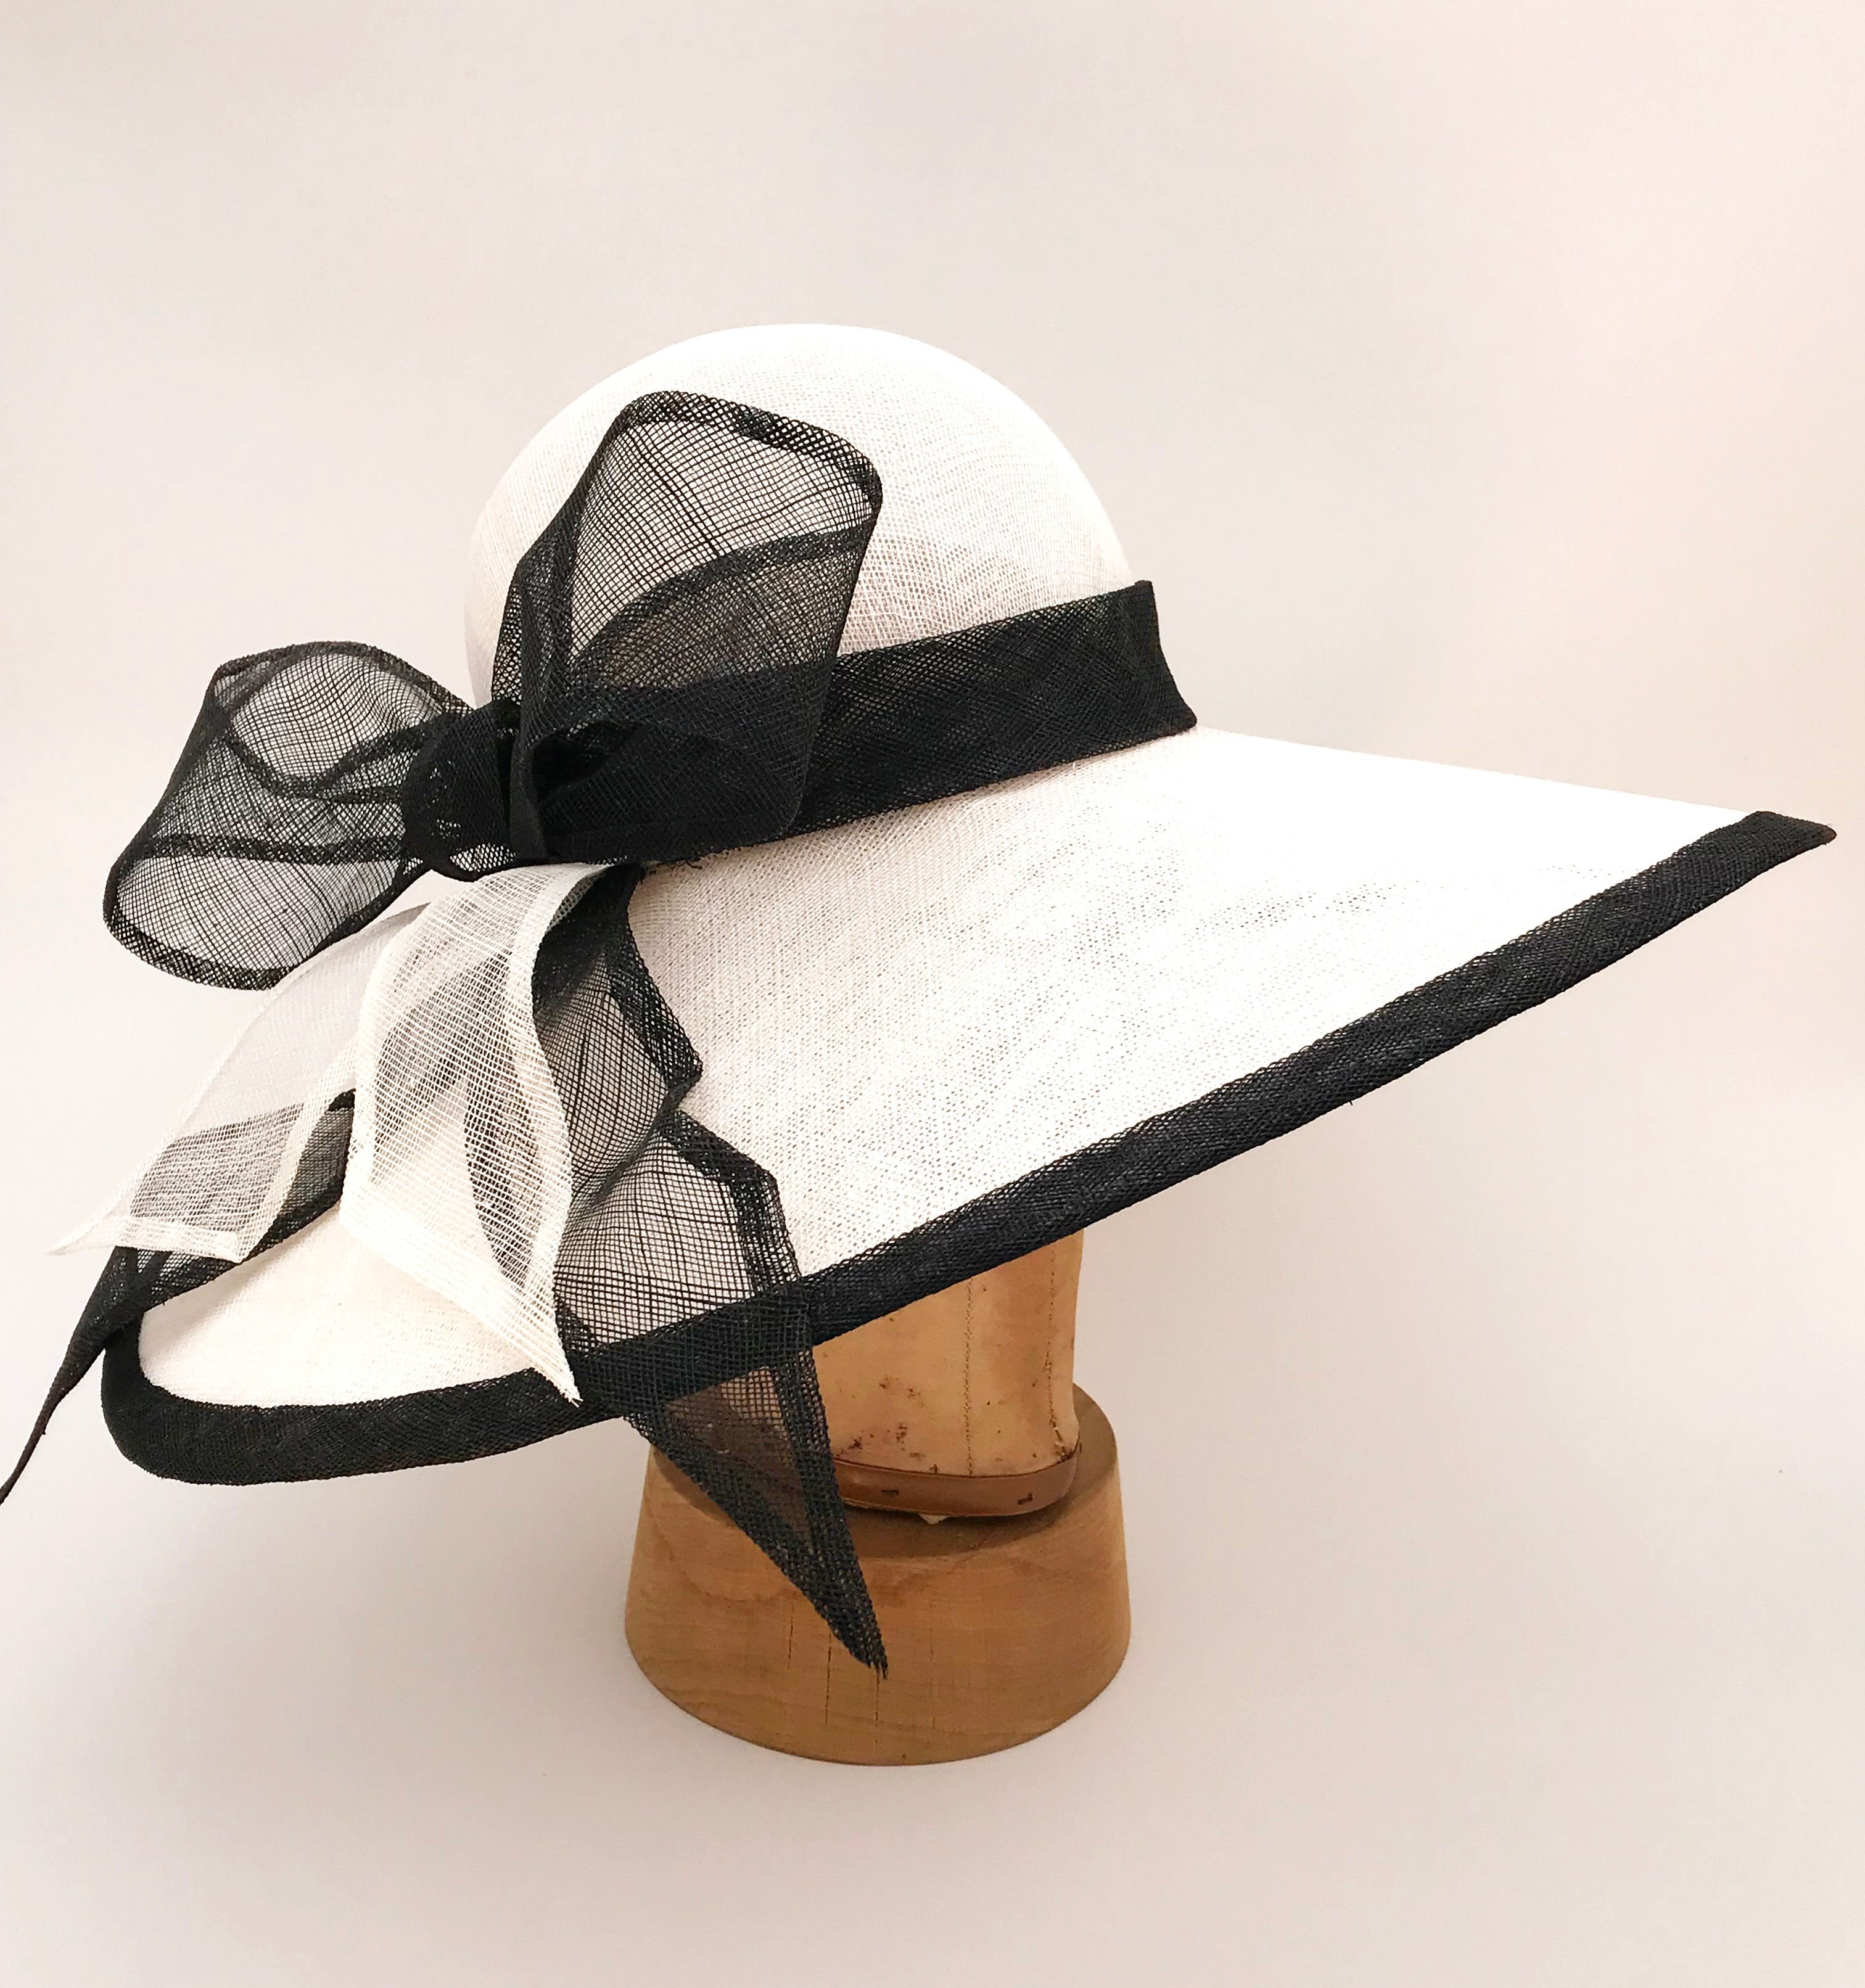 New Today Kentucky Derby Hat Audrey Elegant Stunning Handmade Buy Here Www Charmingladydesigns Com Derby Hats Kentucky Derby Style Kentucky Derby Hats